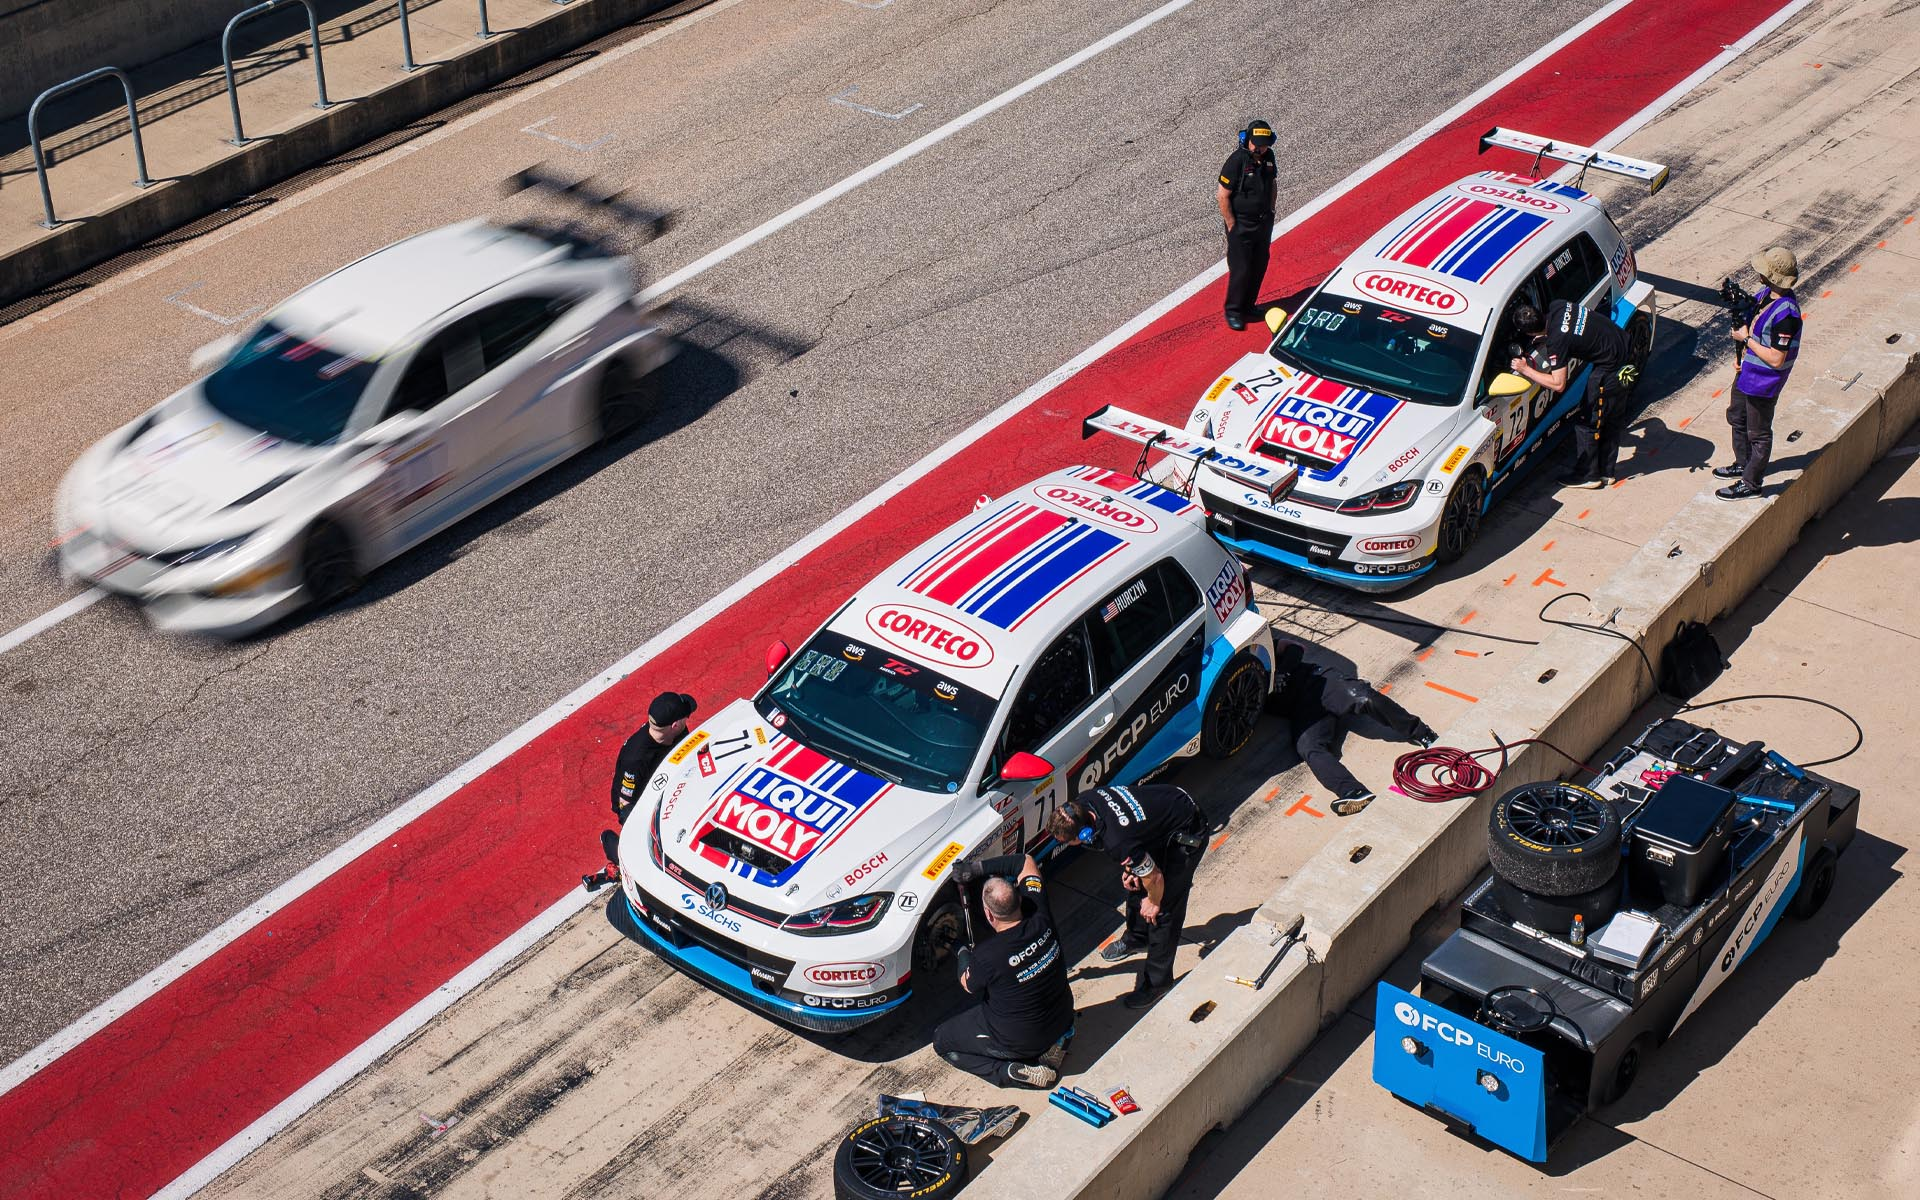 fcpeuro-vw-gti-tcr-for-sale-1